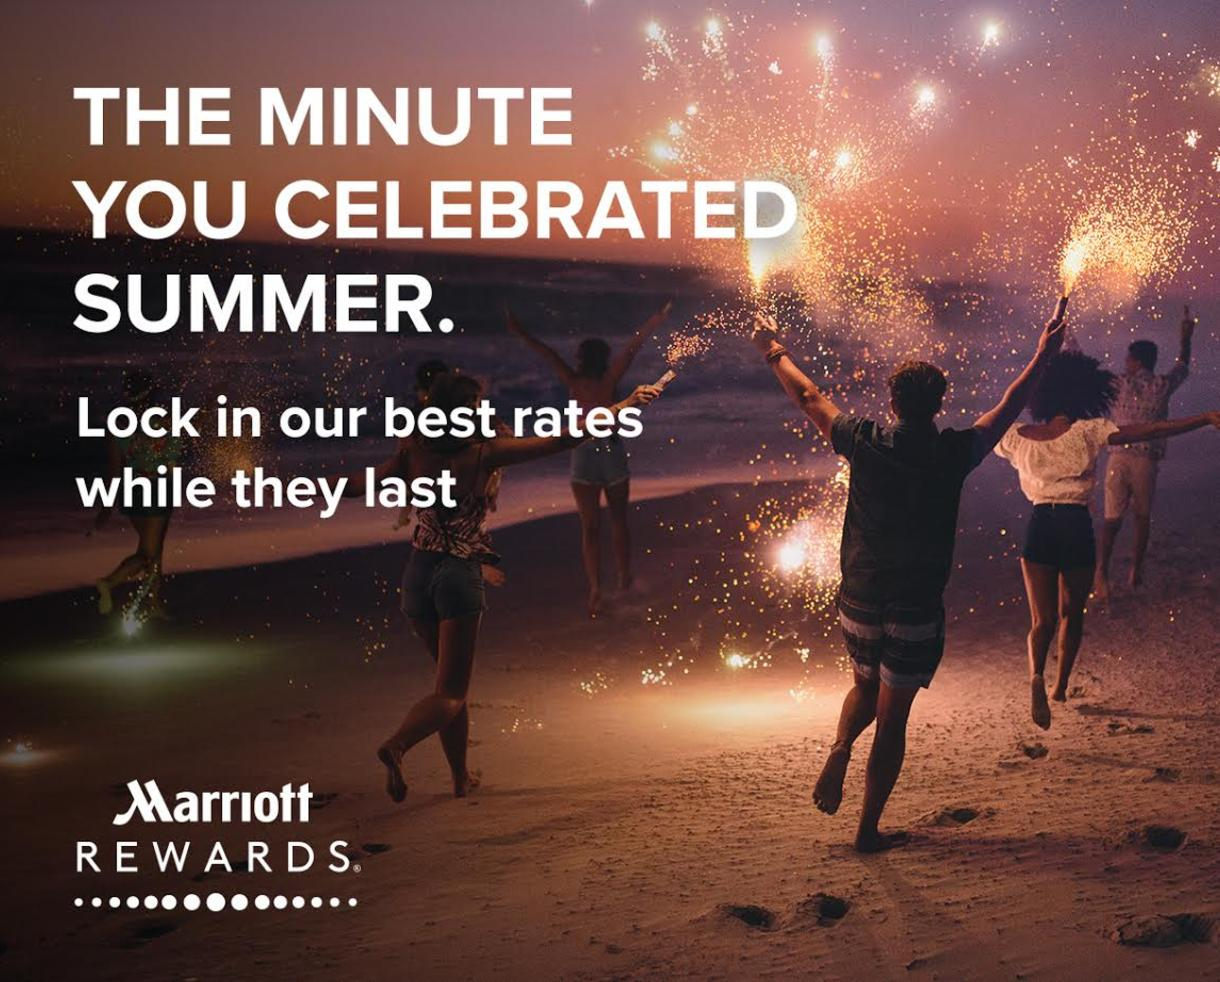 Book Your Family Vacation Now for Marriott's Best Rates all Summer Long